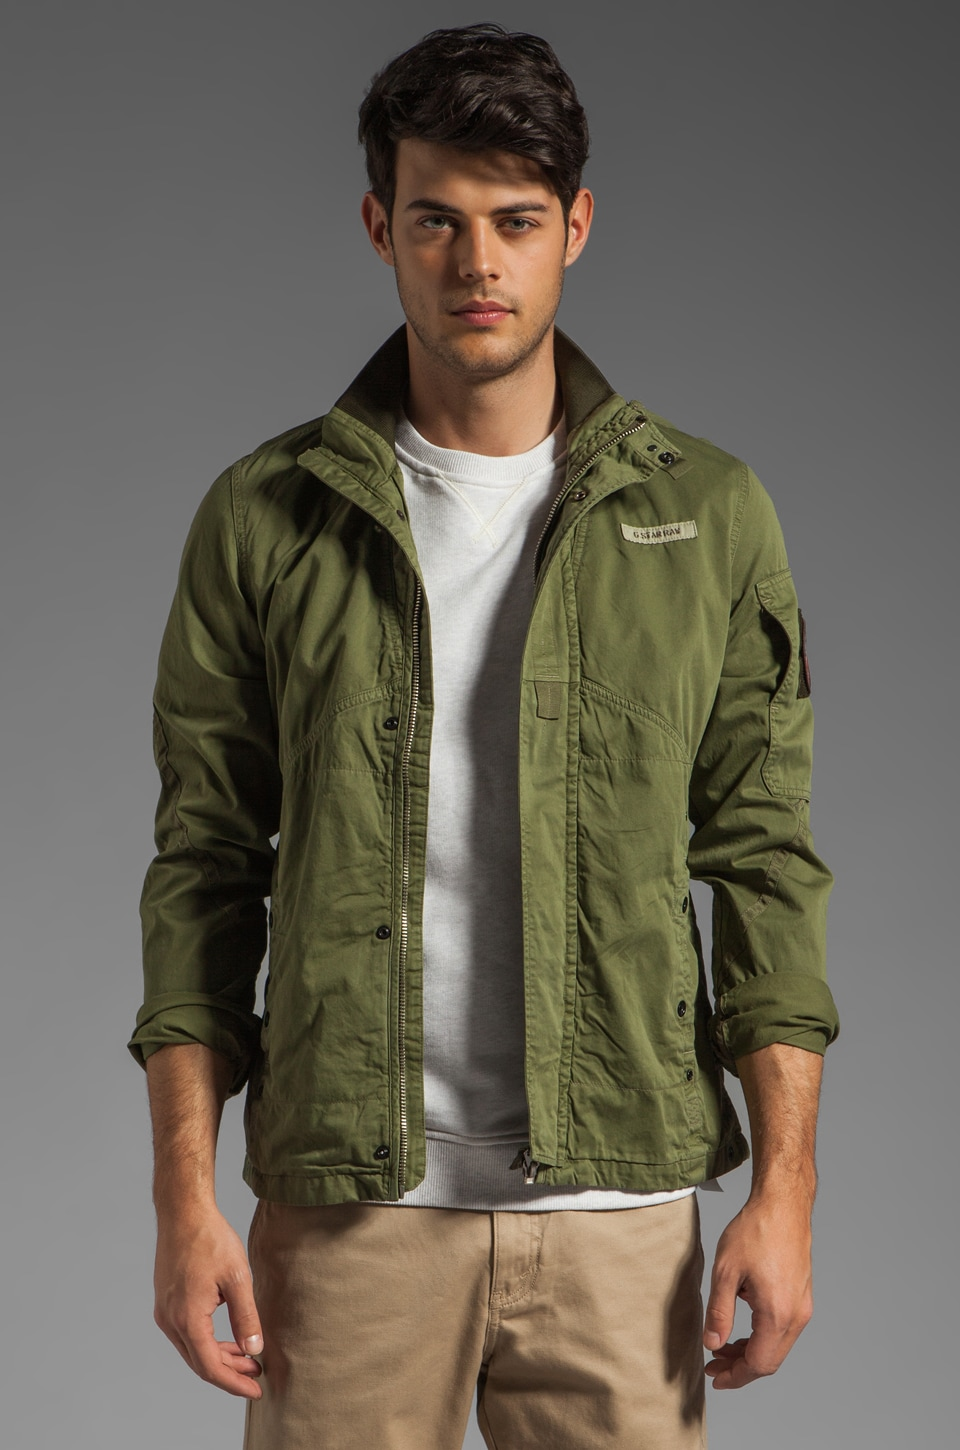 G-Star Recolite Overshirt in Sage